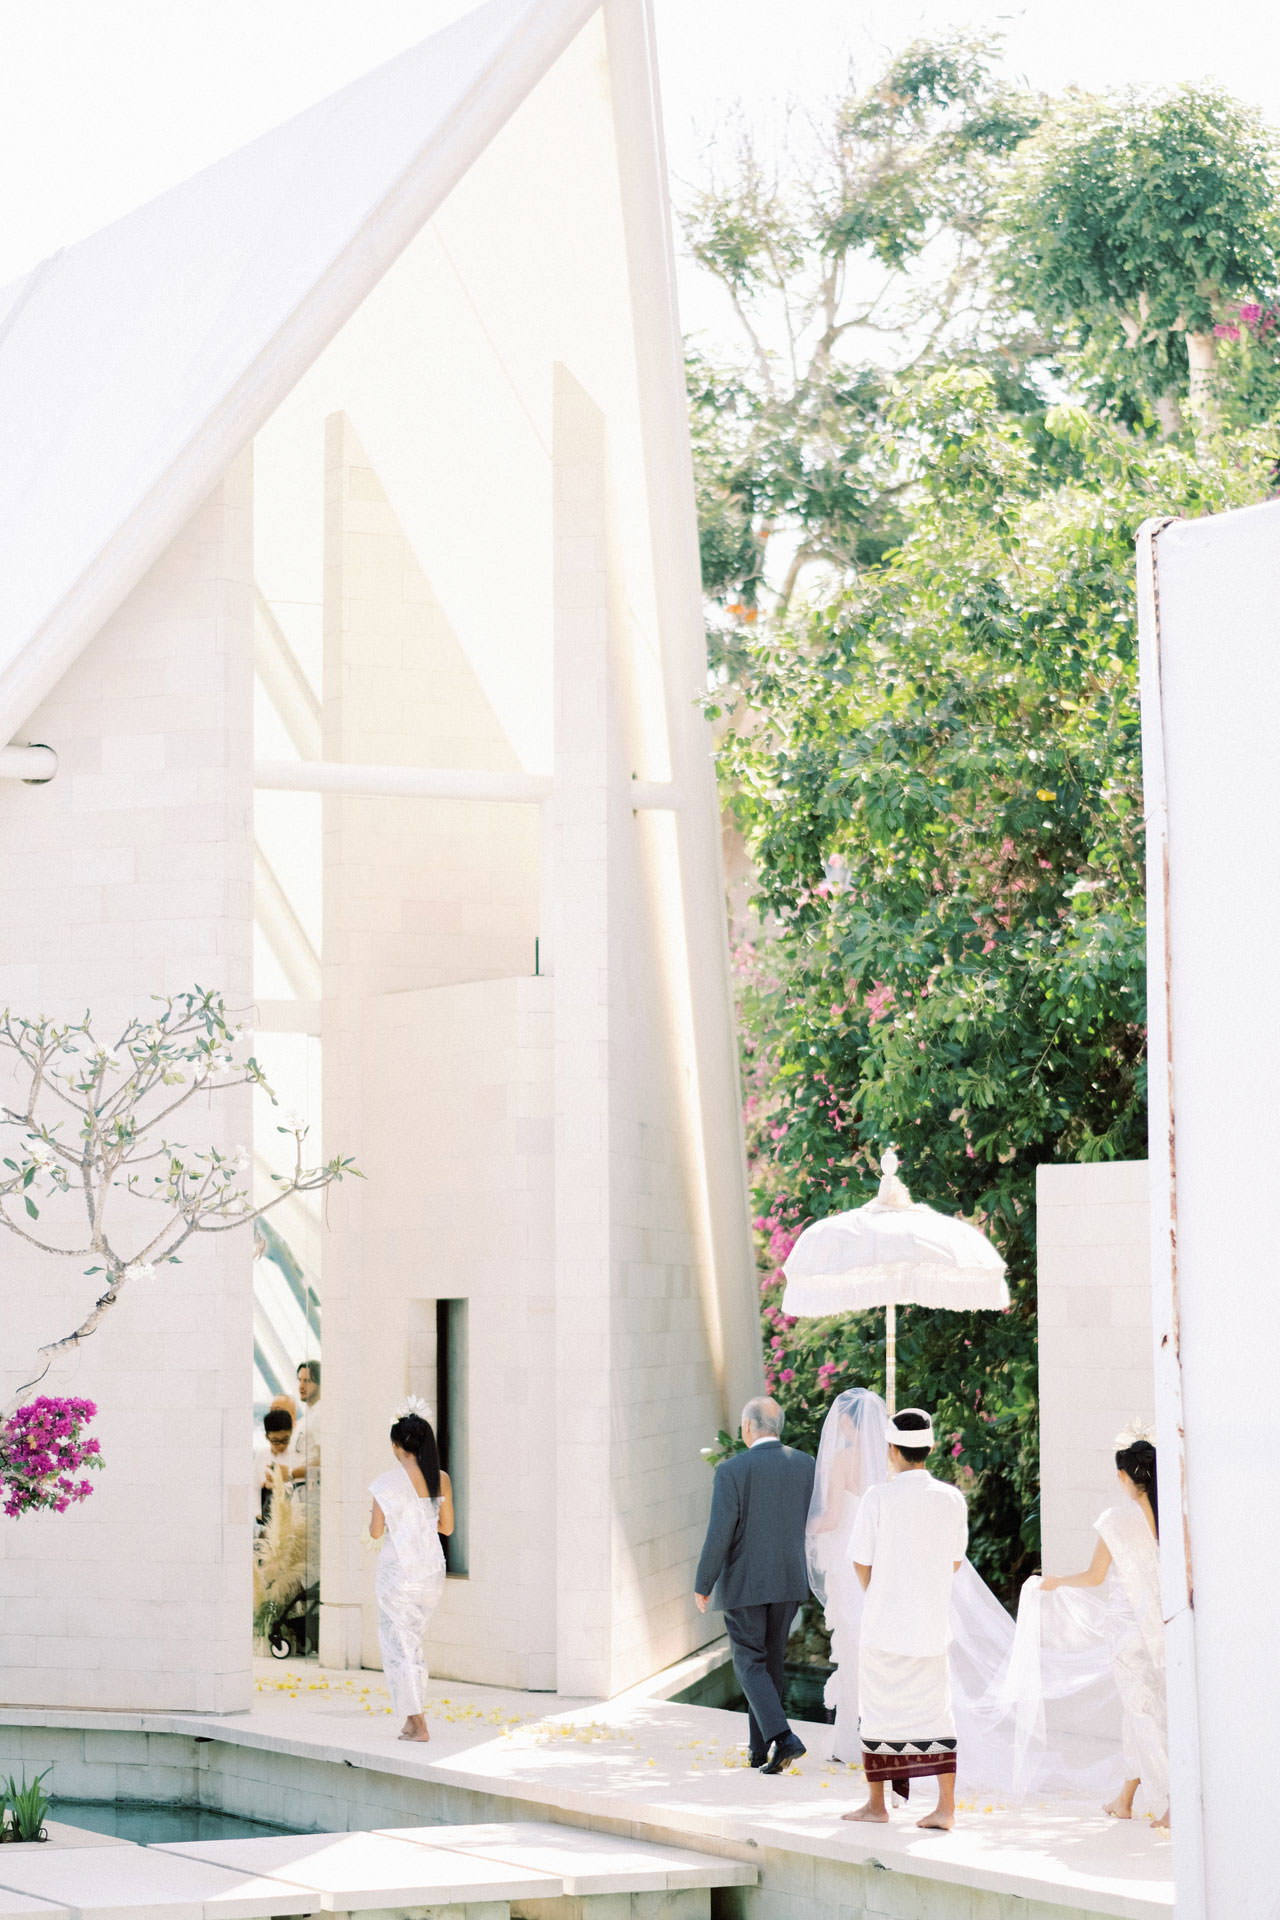 Tirtha Uluwatu Wedding with Reception at The Glass House Bali 15